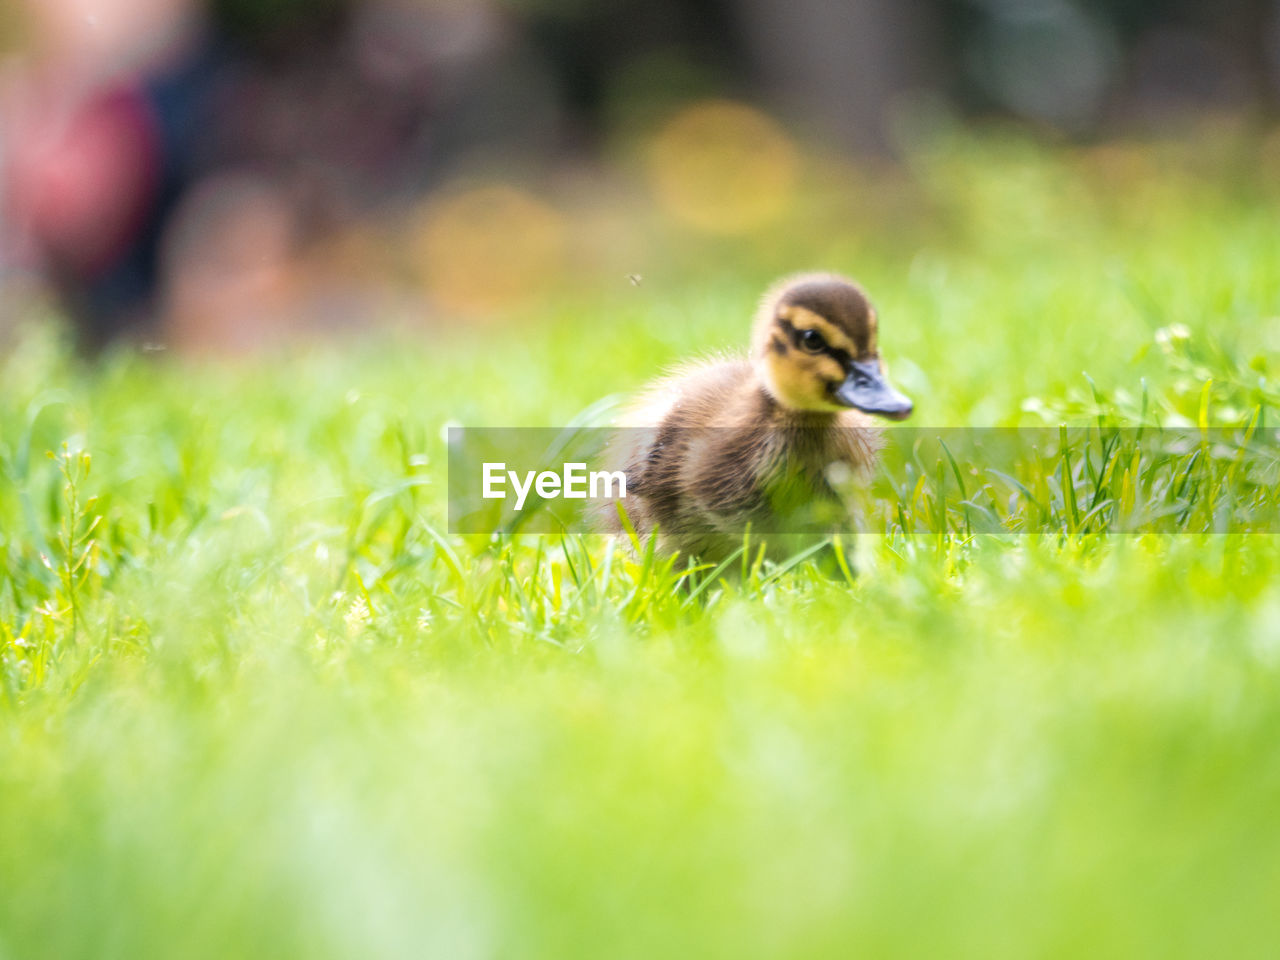 animal themes, animal, one animal, vertebrate, animal wildlife, selective focus, animals in the wild, plant, green color, bird, grass, nature, field, day, no people, land, growth, outdoors, young animal, close-up, gosling